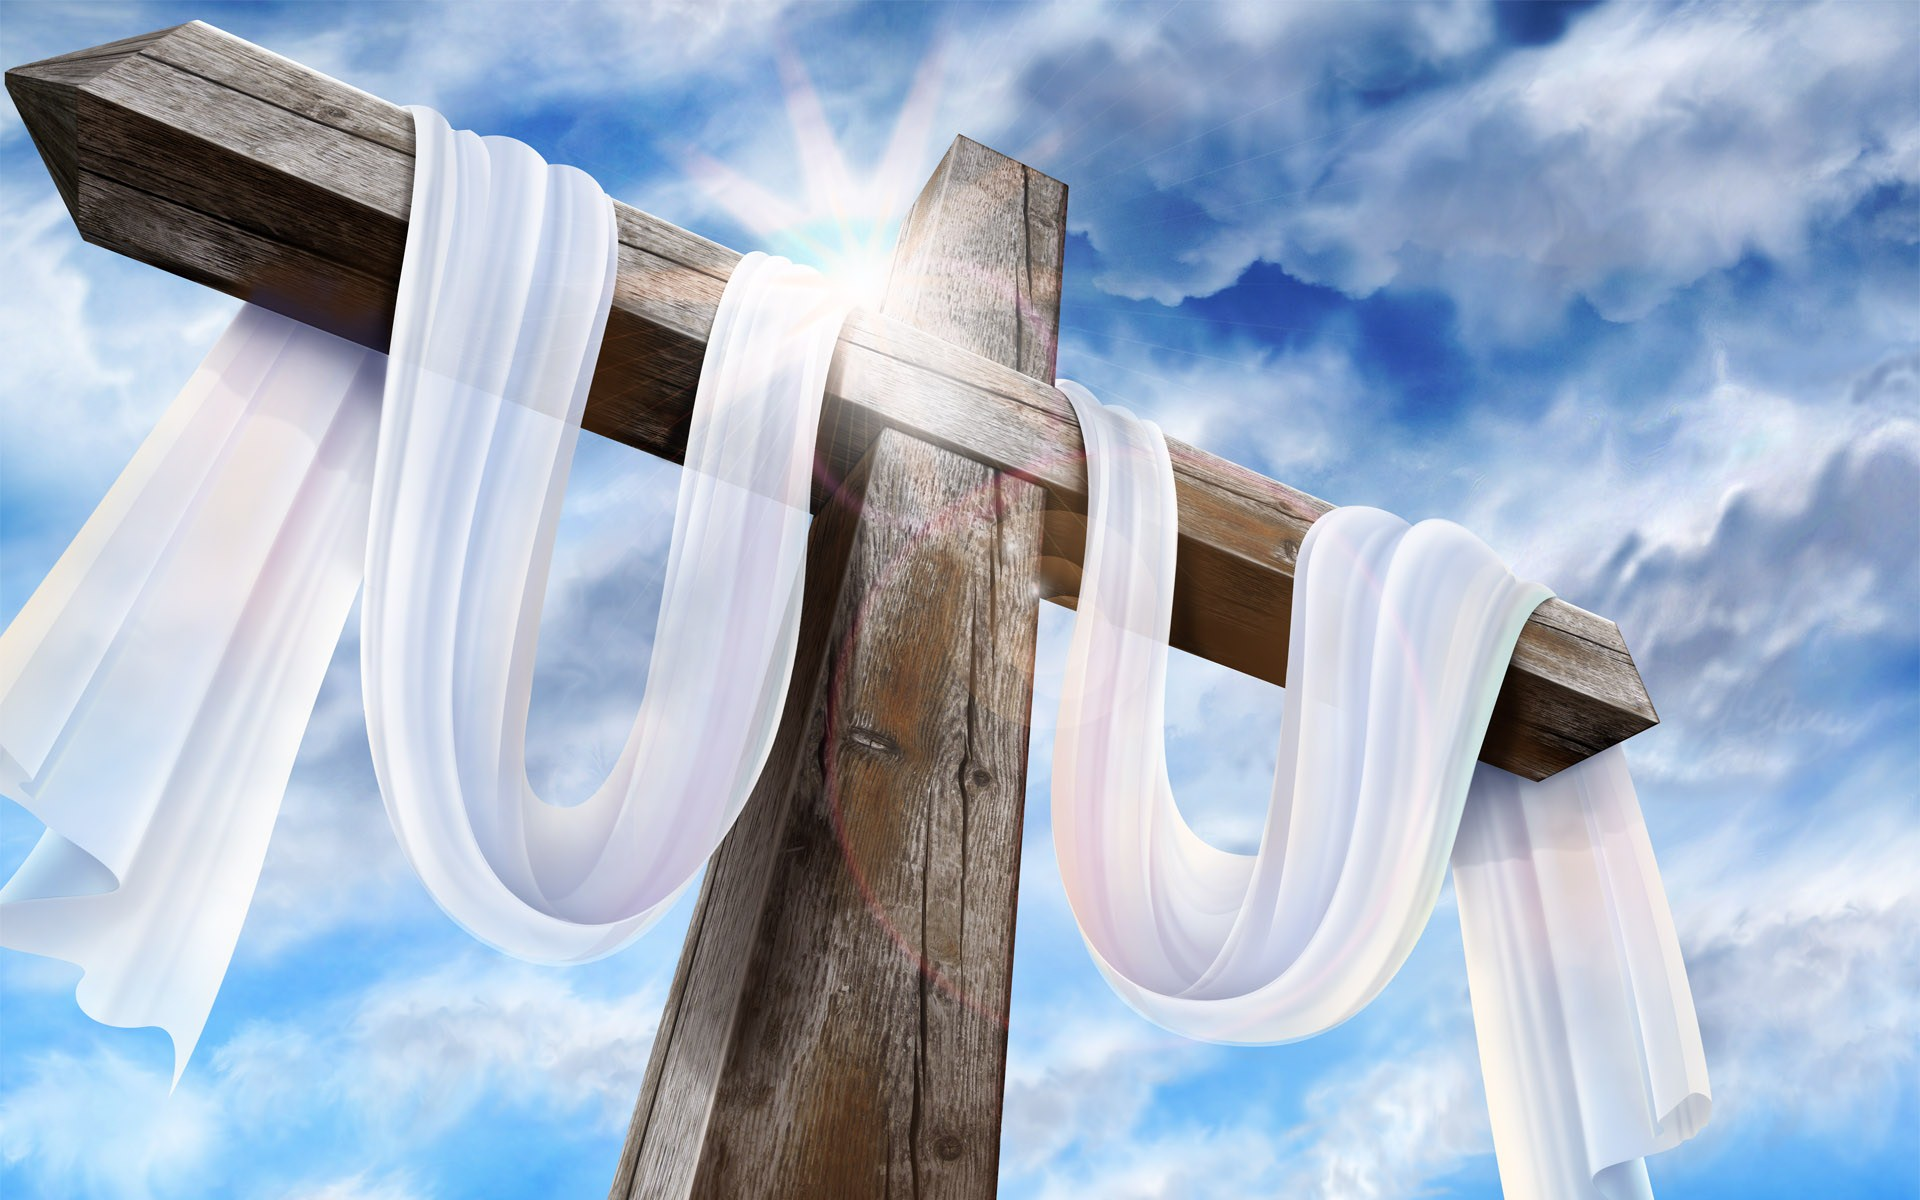 Resurrection Easter Wallpaper Images amp Pictures   Becuo 1920x1200